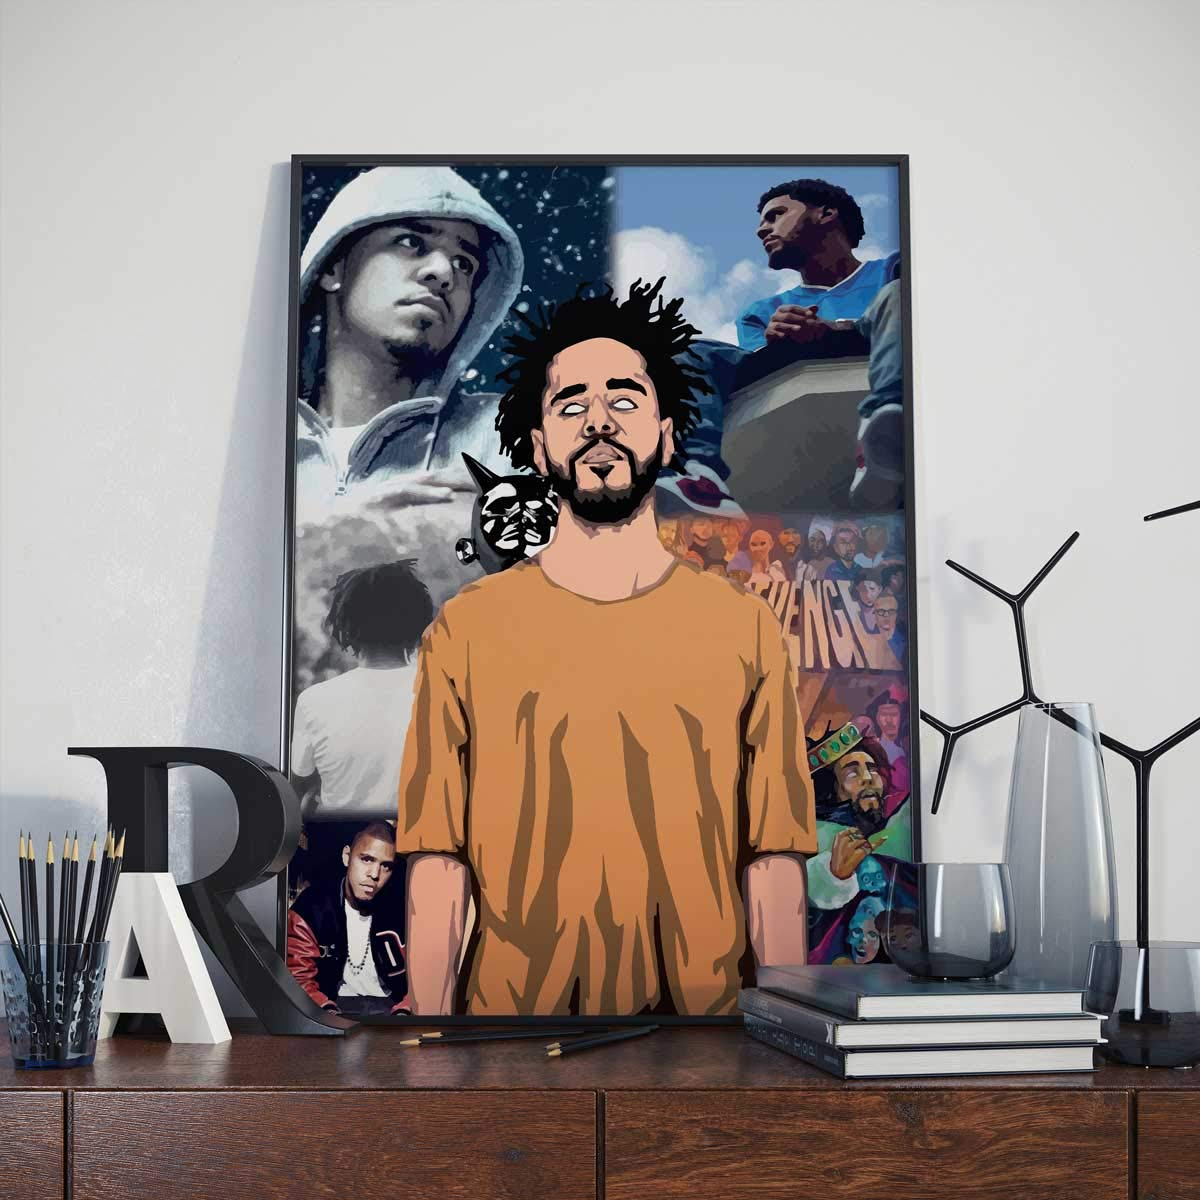 J Cole Poster Compilation Max 85% OFF A2 Ranking TOP17 Size Print